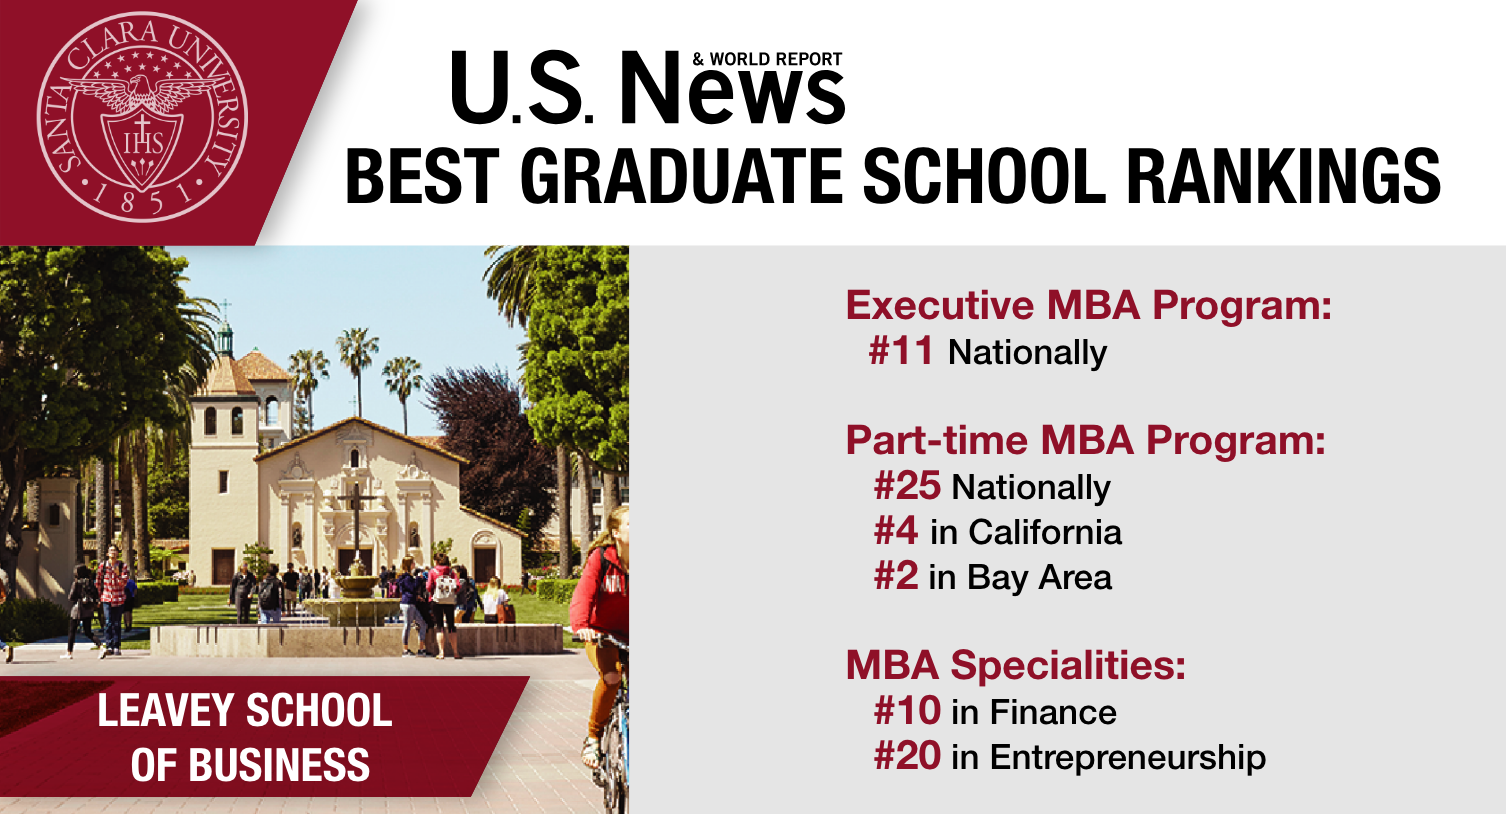 U.S. News Graduate Rankings 2021